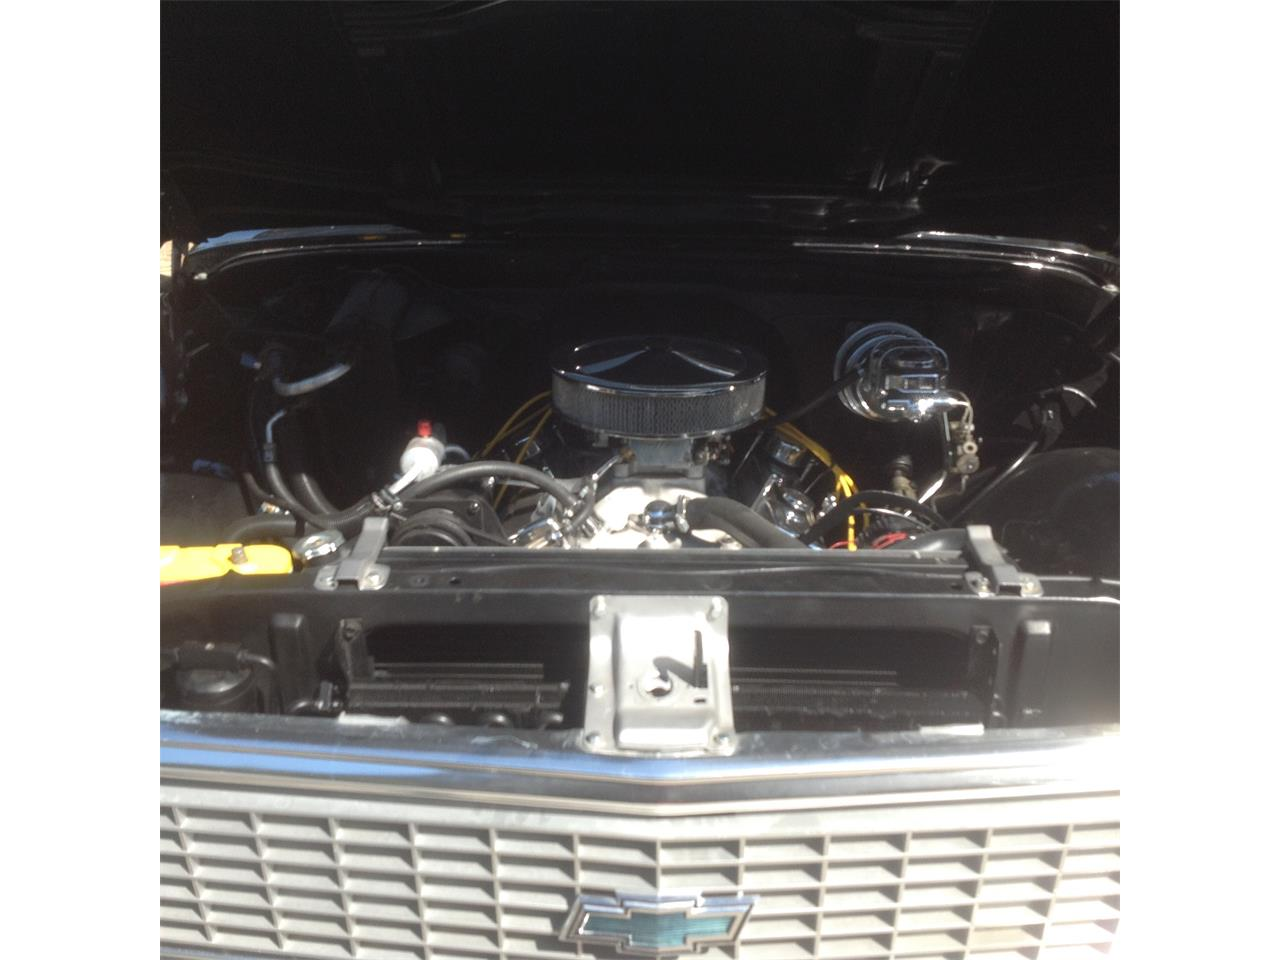 Large Picture of 1972 Chevrolet C/K 10 located in California - $32,500.00 Offered by a Private Seller - LDH0